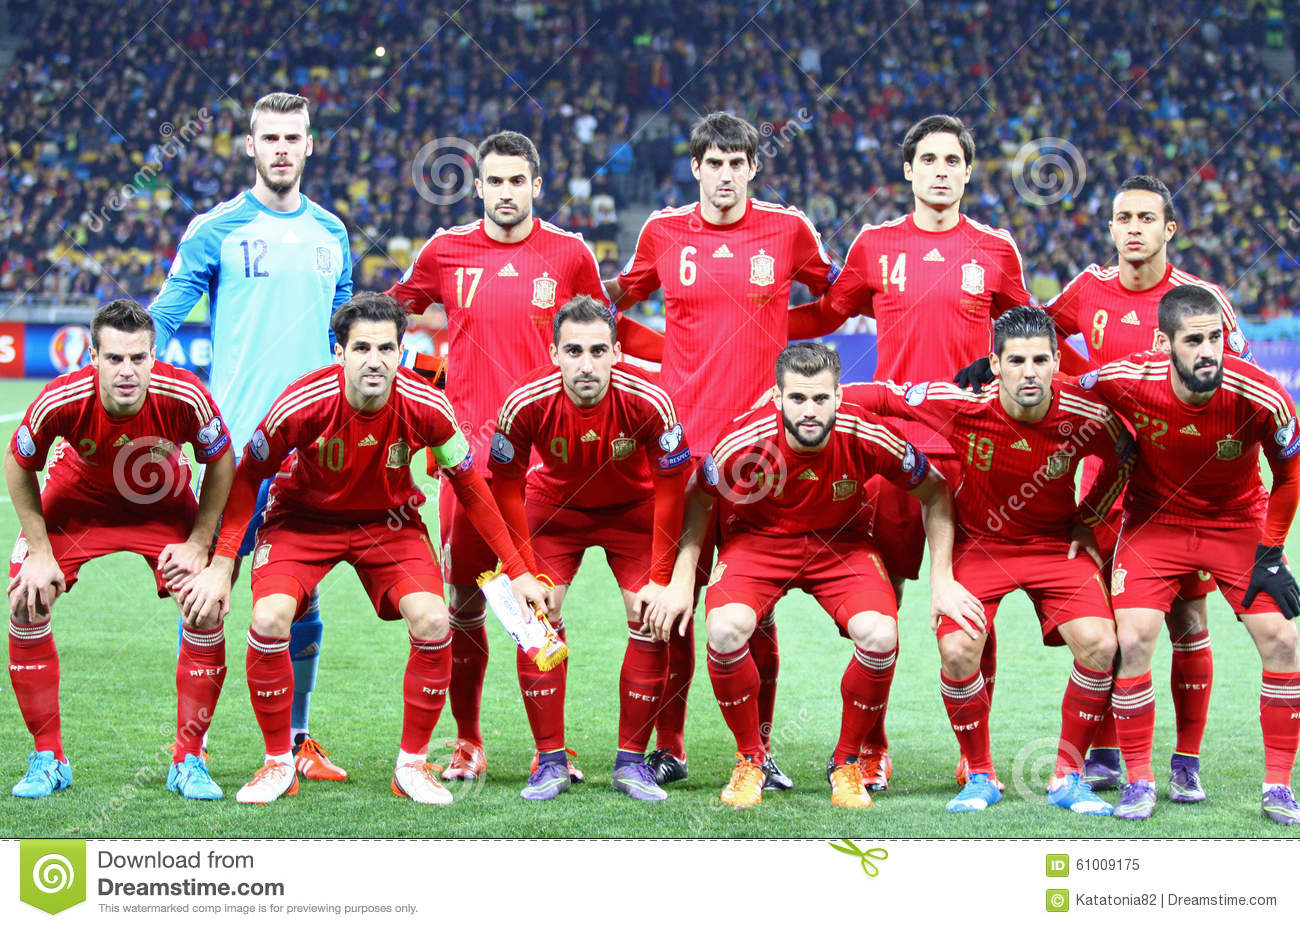 d9a3fd9ad KYIV, UKRAINE - OCTOBER 12, 2015: Players of Spain National football team  pose for a group photo before UEFA EURO 2016 Qualifying game against  Ukraine at ...